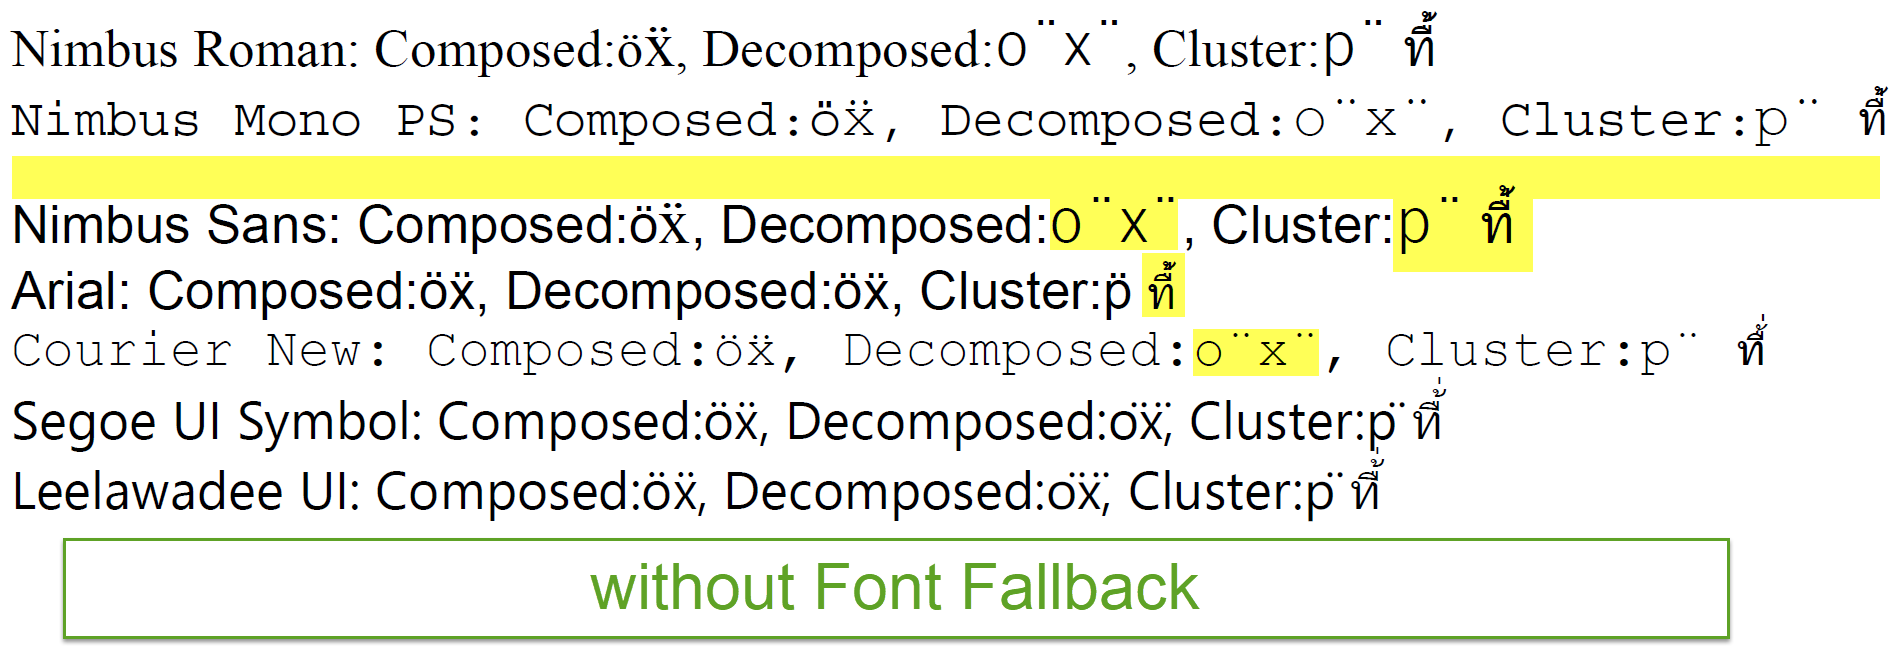 Unicode Combining Characters and Font Fallback | Documents for PDF